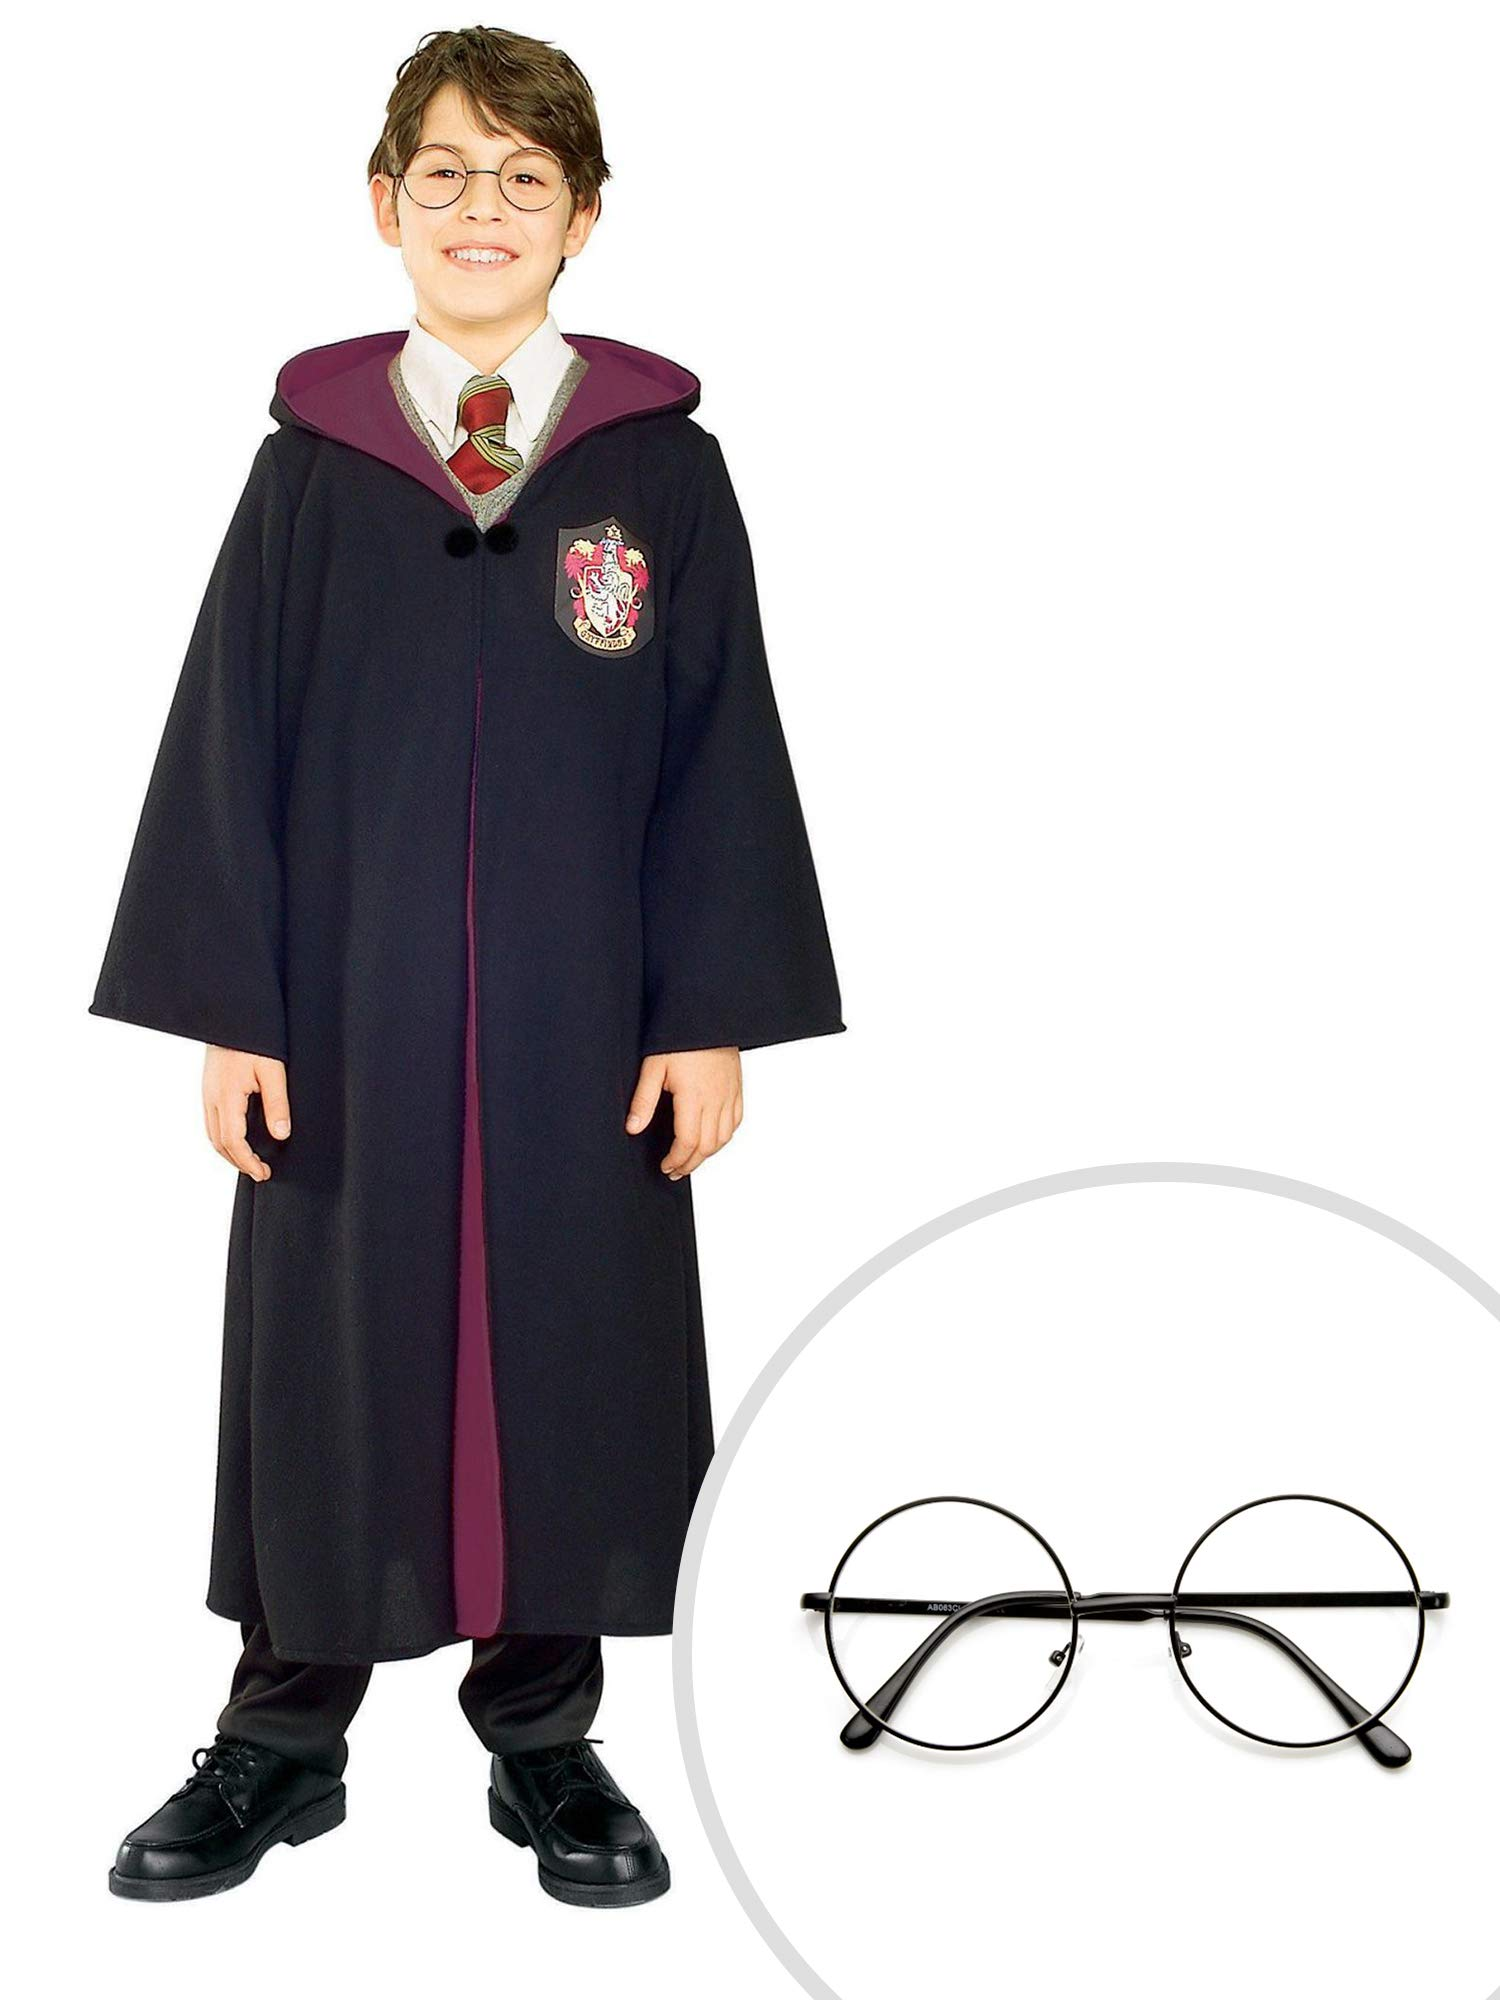 Harry Potter Costume Kit Kids Large Robe With Harry Potter Glasses